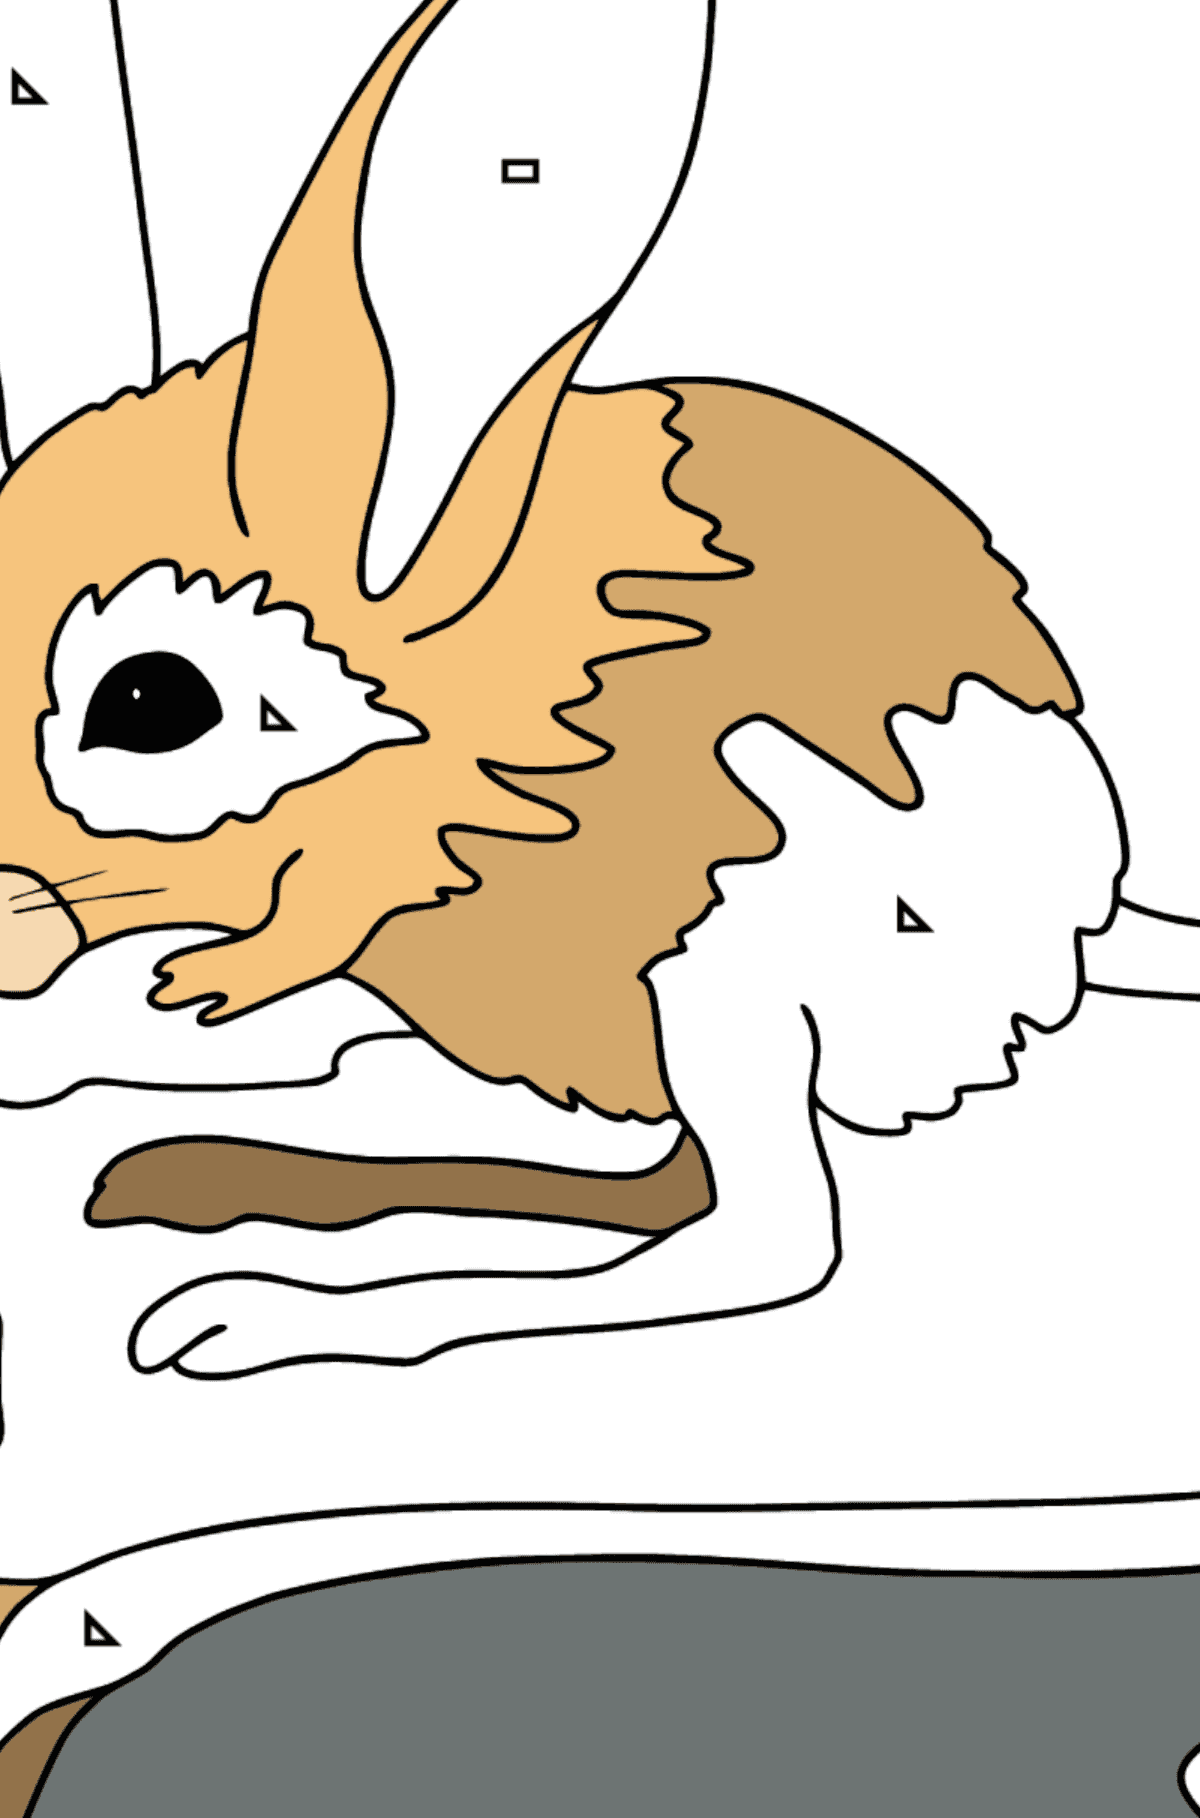 Coloring Page - A Jerboa is Looking Scared - Coloring by Geometric Shapes for Kids